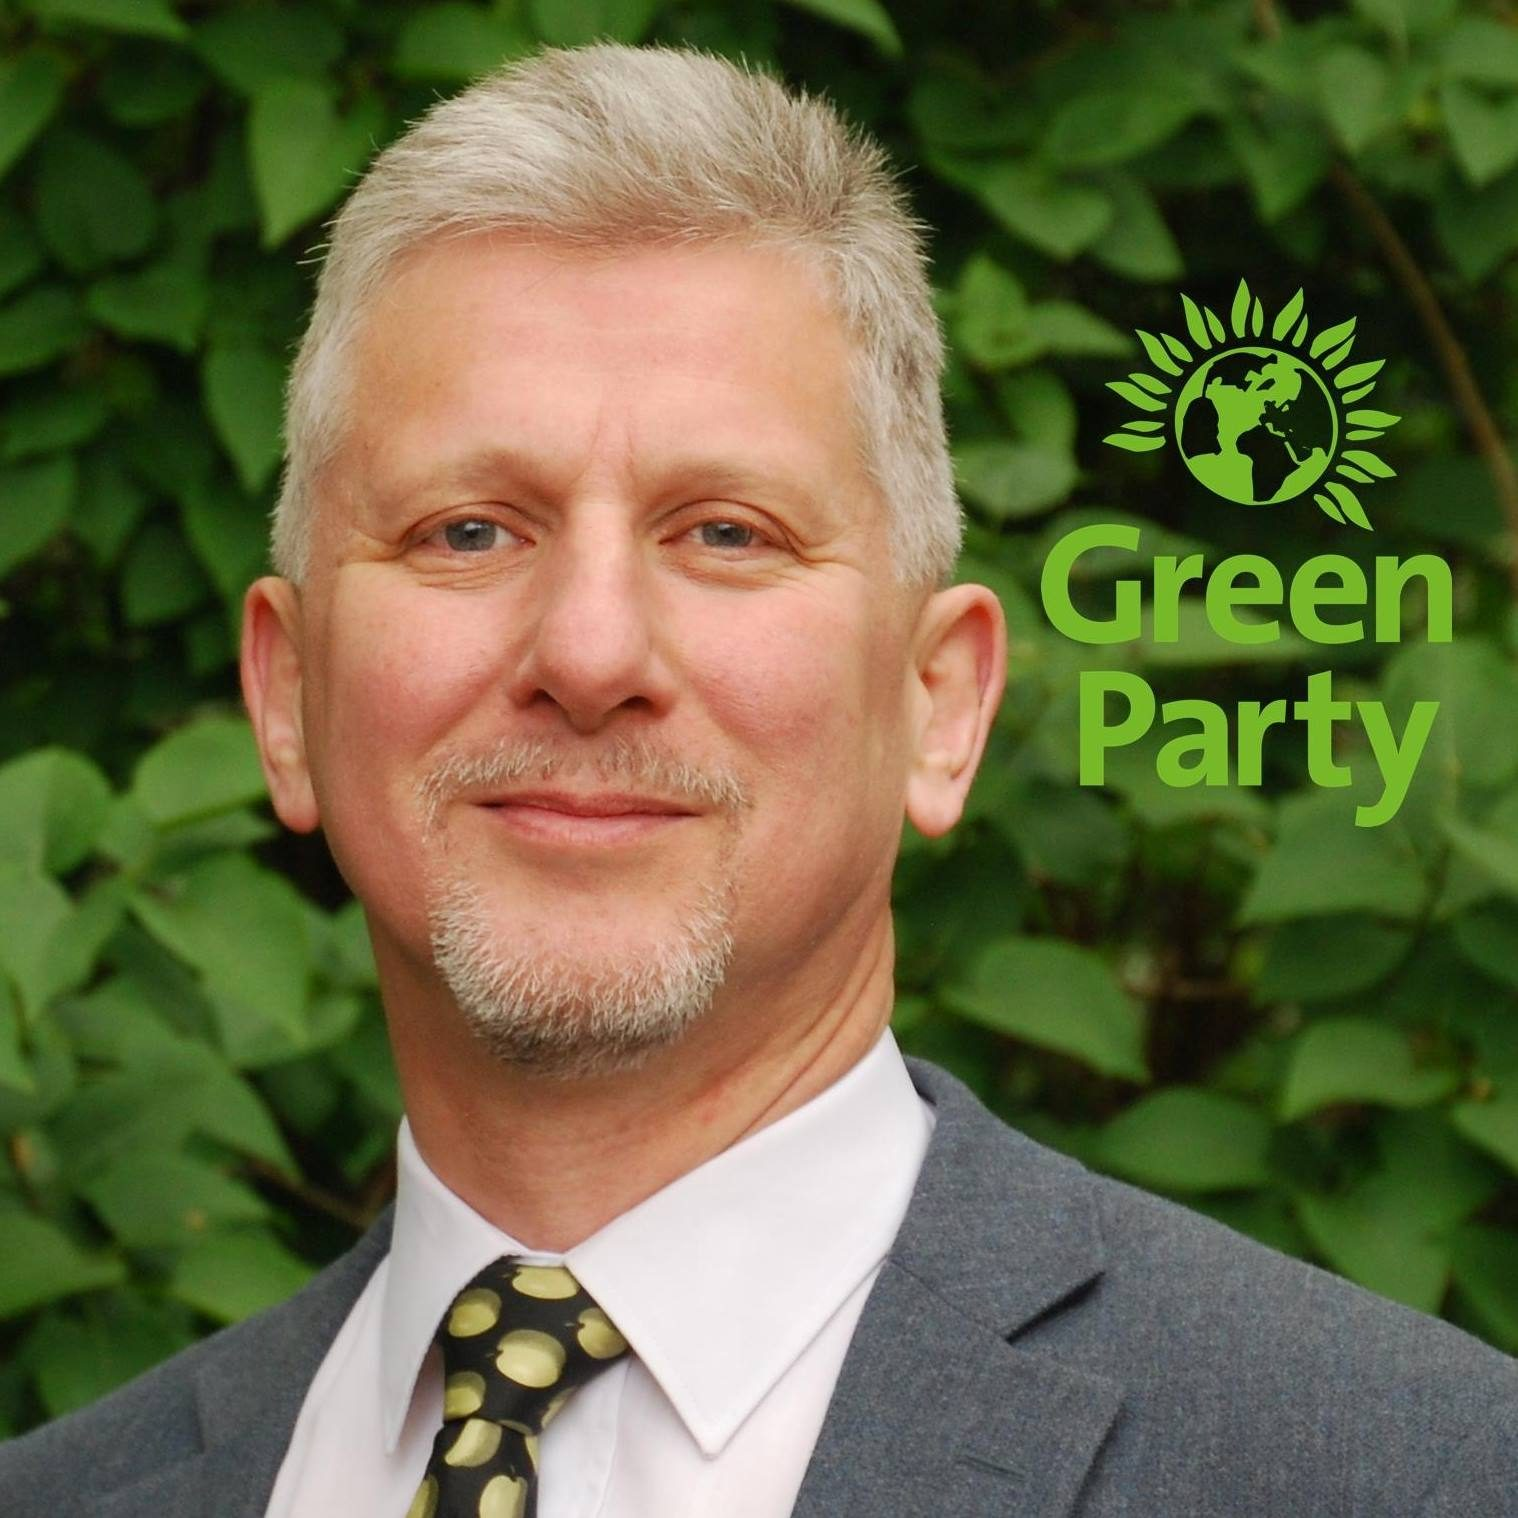 Tim Lee Green Party